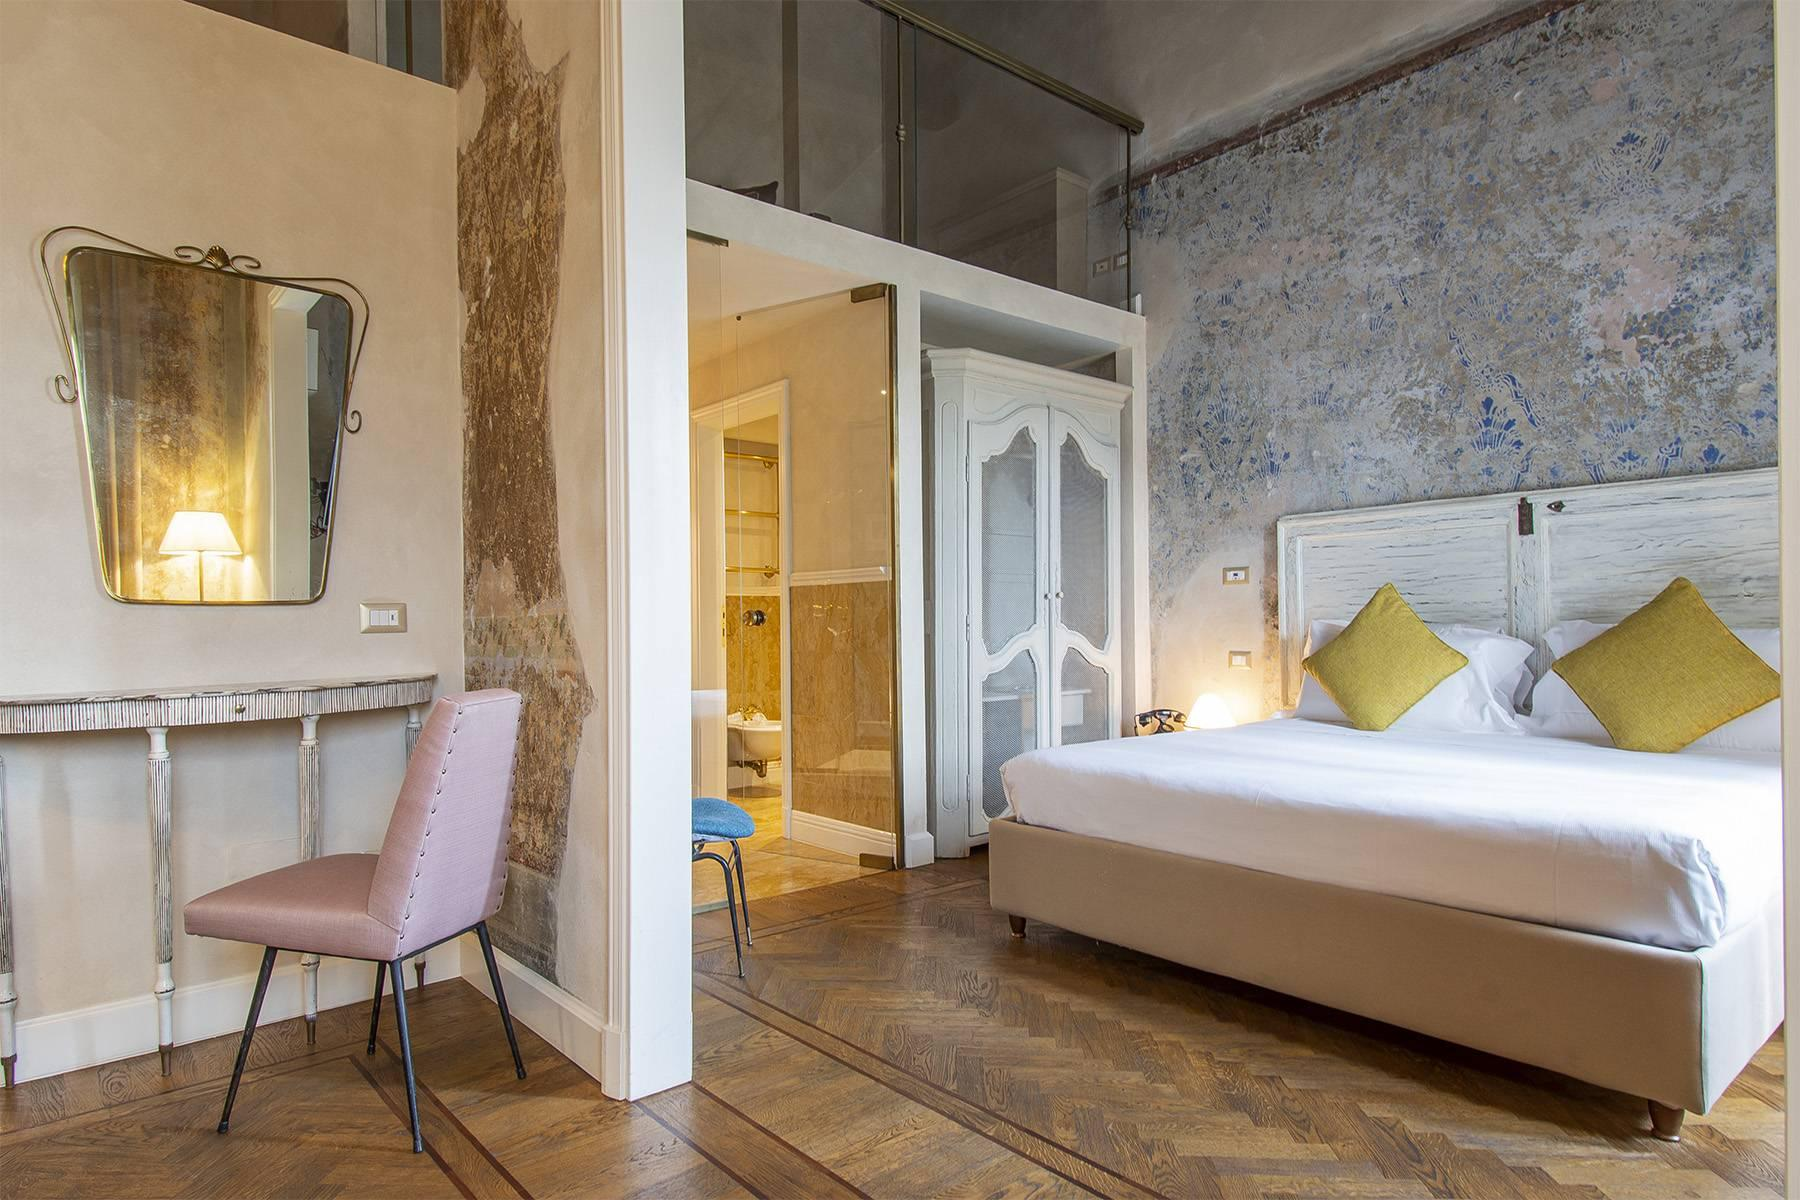 Amazing 600sqm turn-key boutique hotel in the heart of town - 21